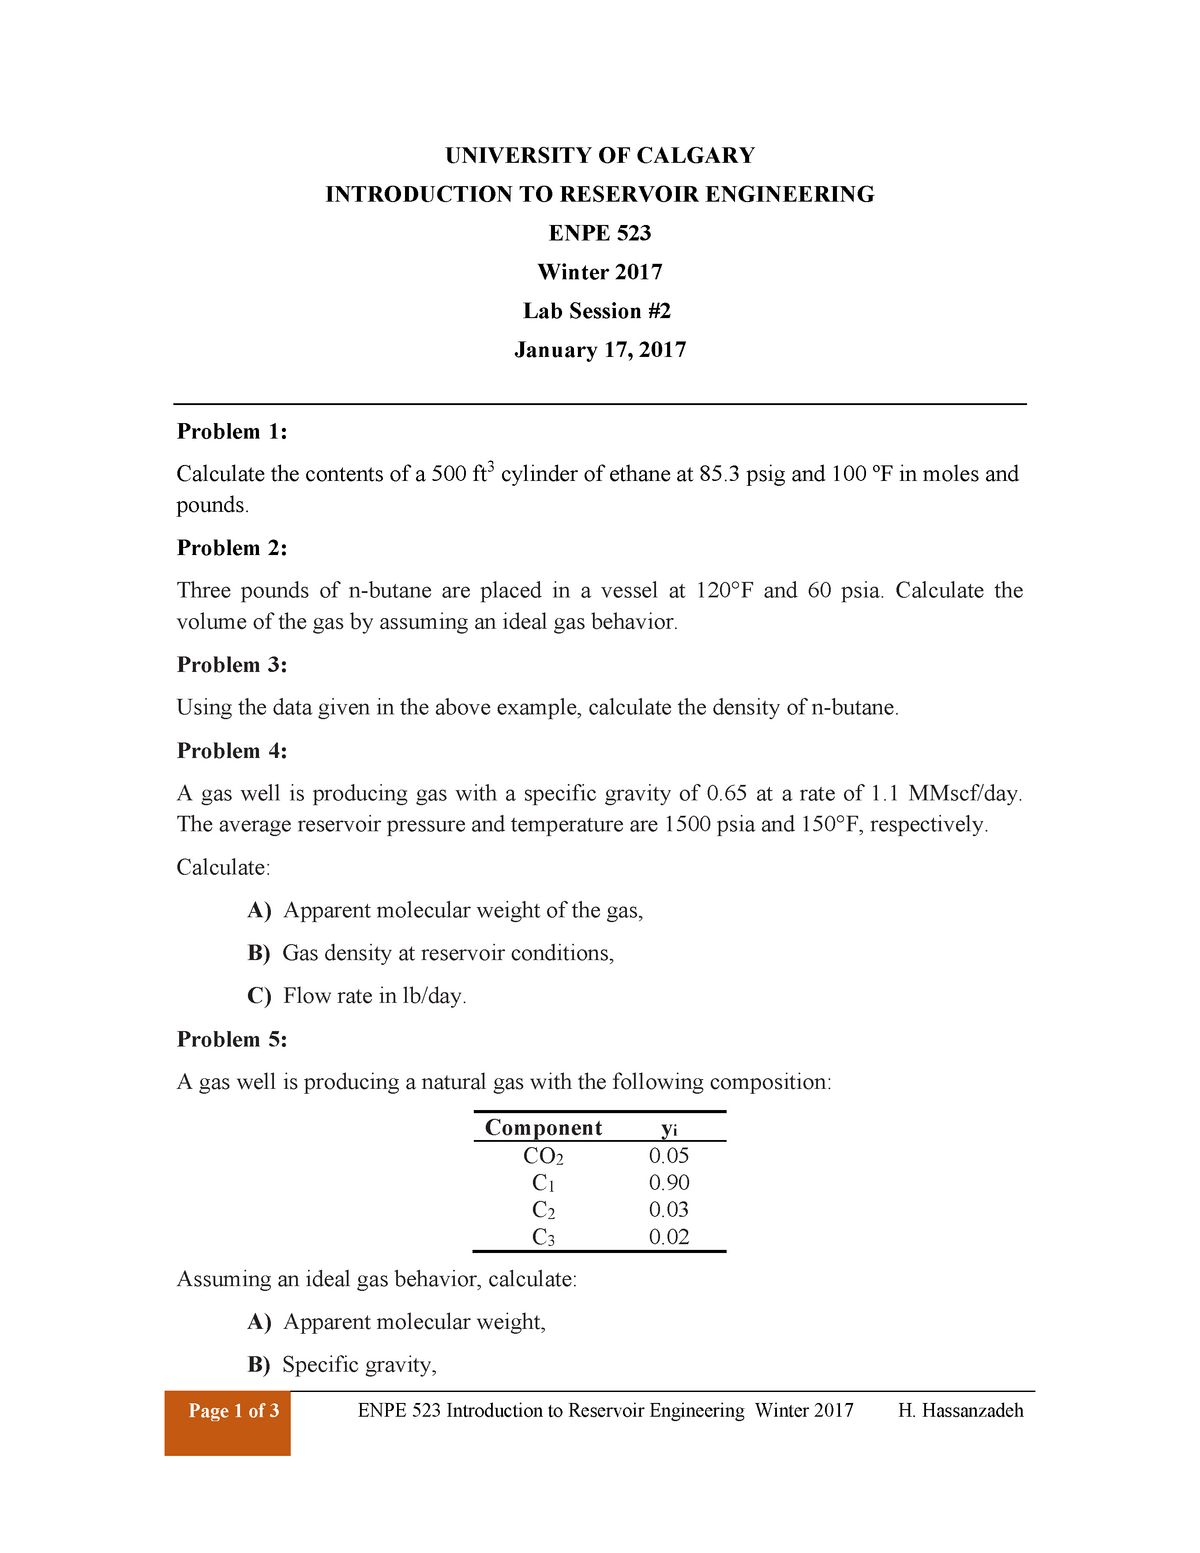 2-Lab problems  Oil and gas properties - Petroleum 523